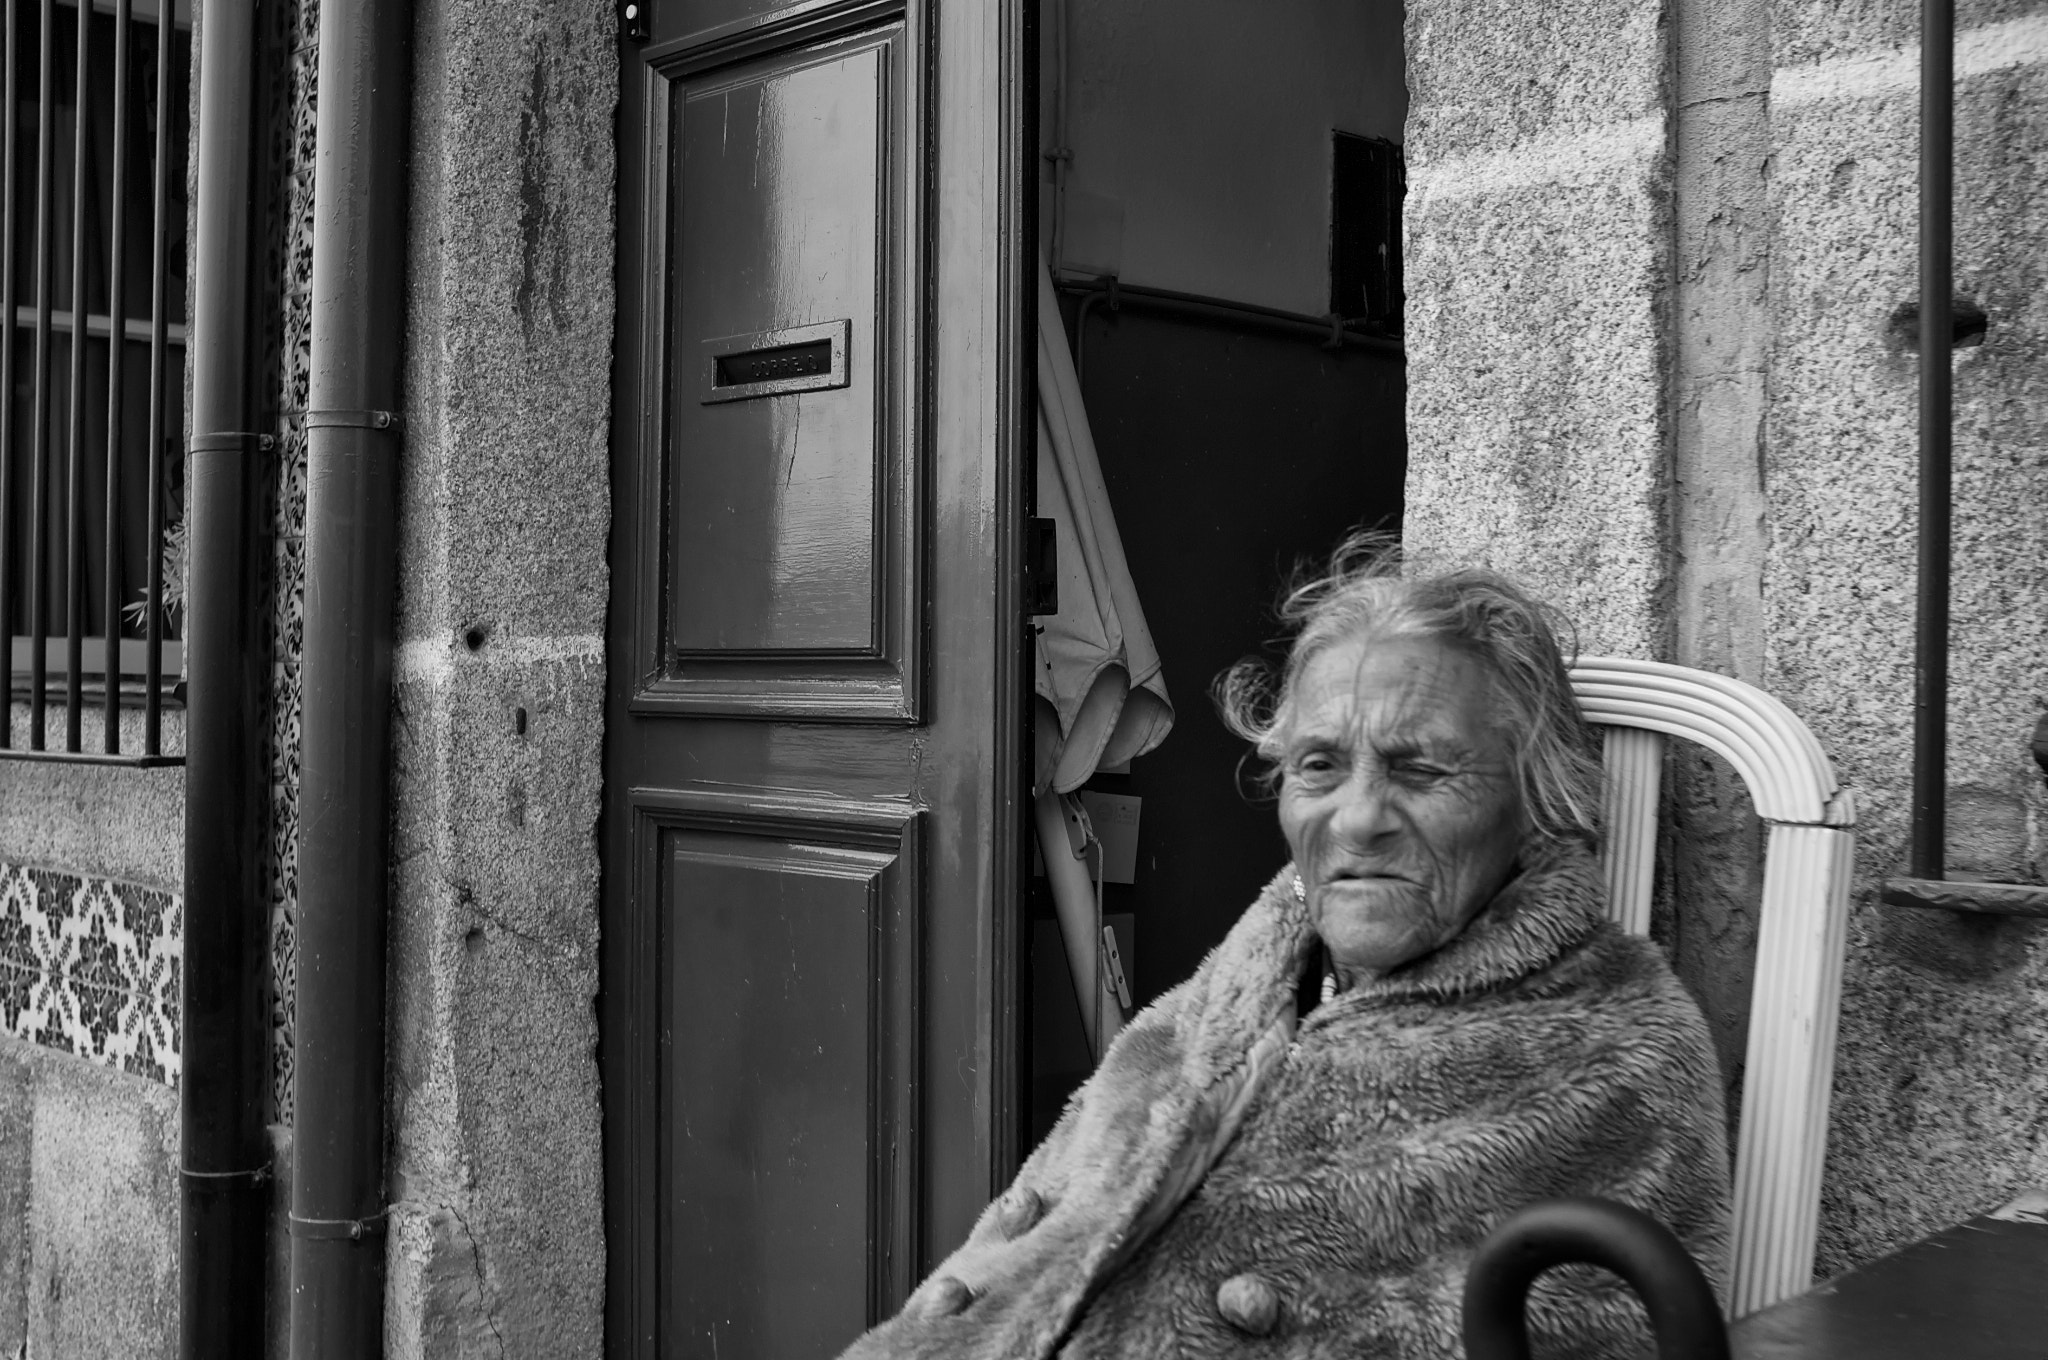 Photograph candid - street by Alexander Ess on 500px